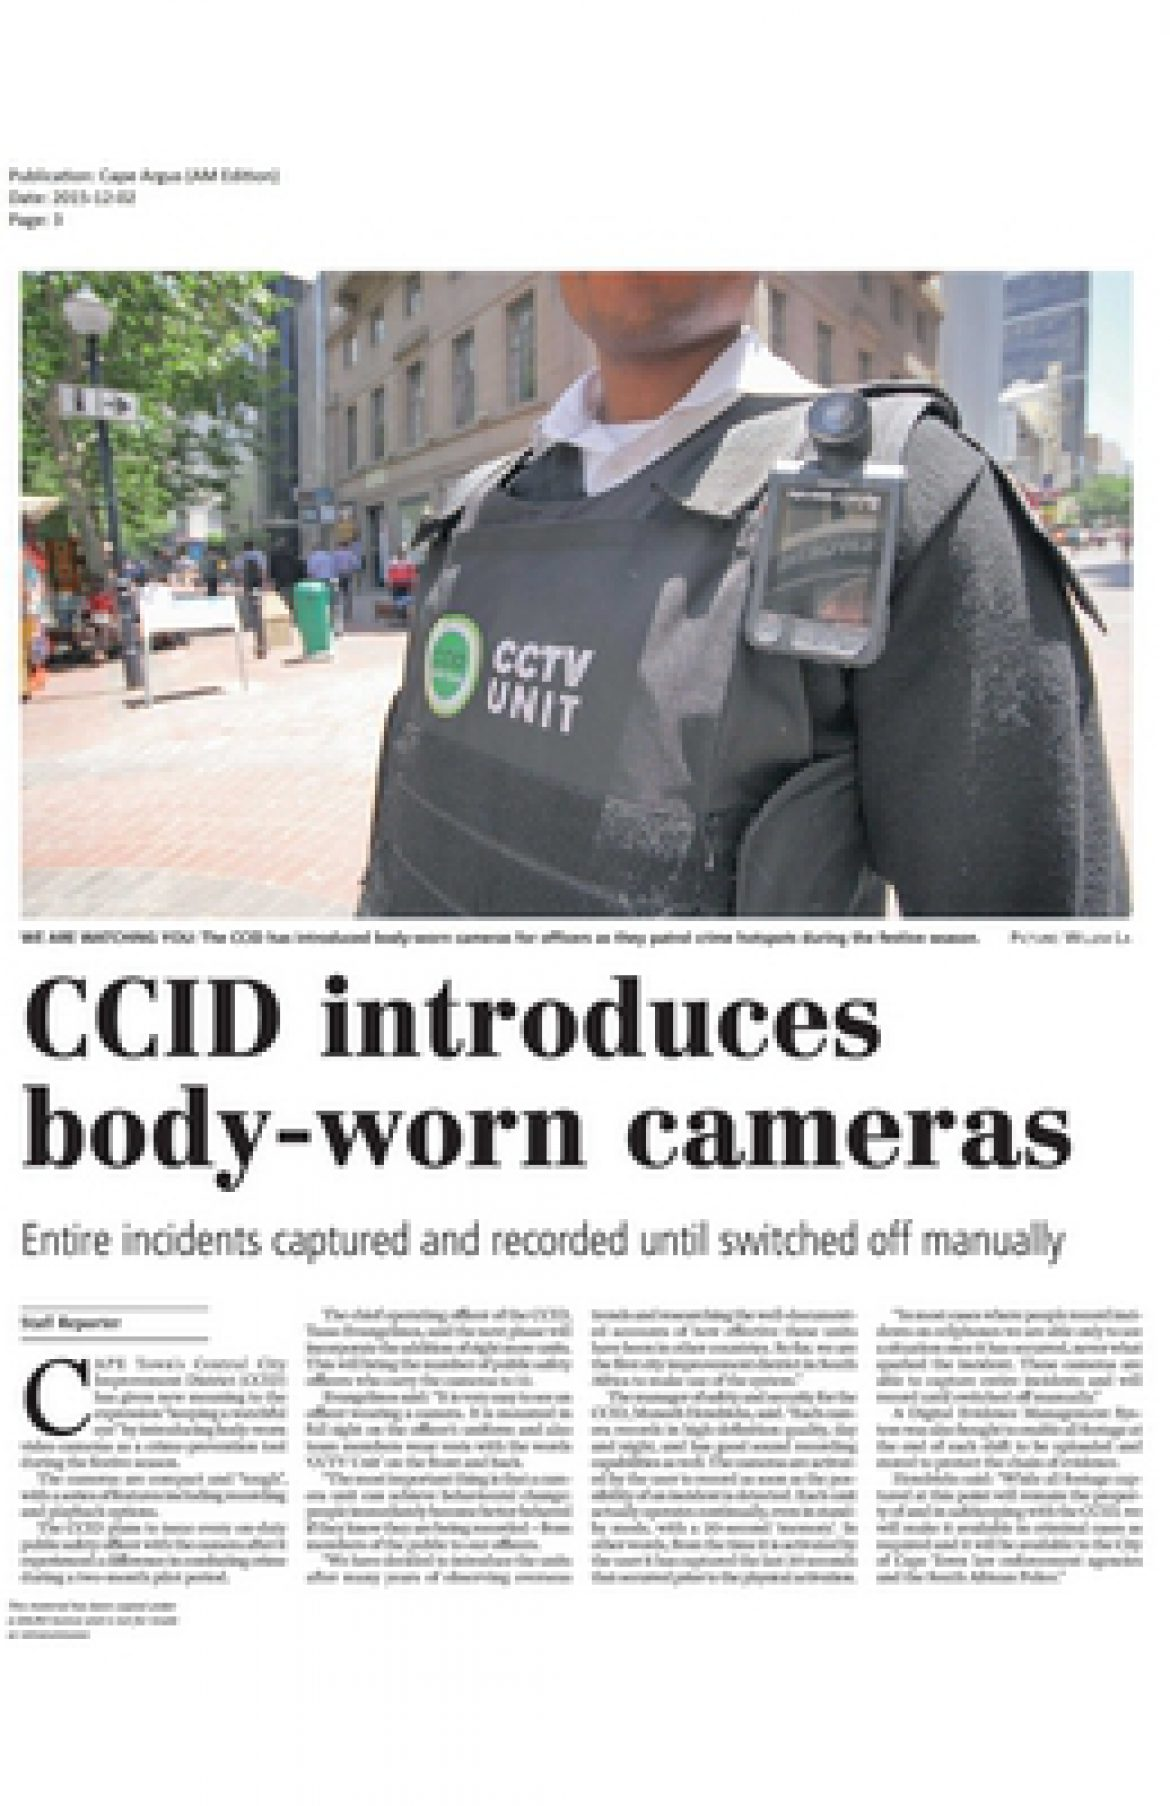 CCID introduces body-worn cameras